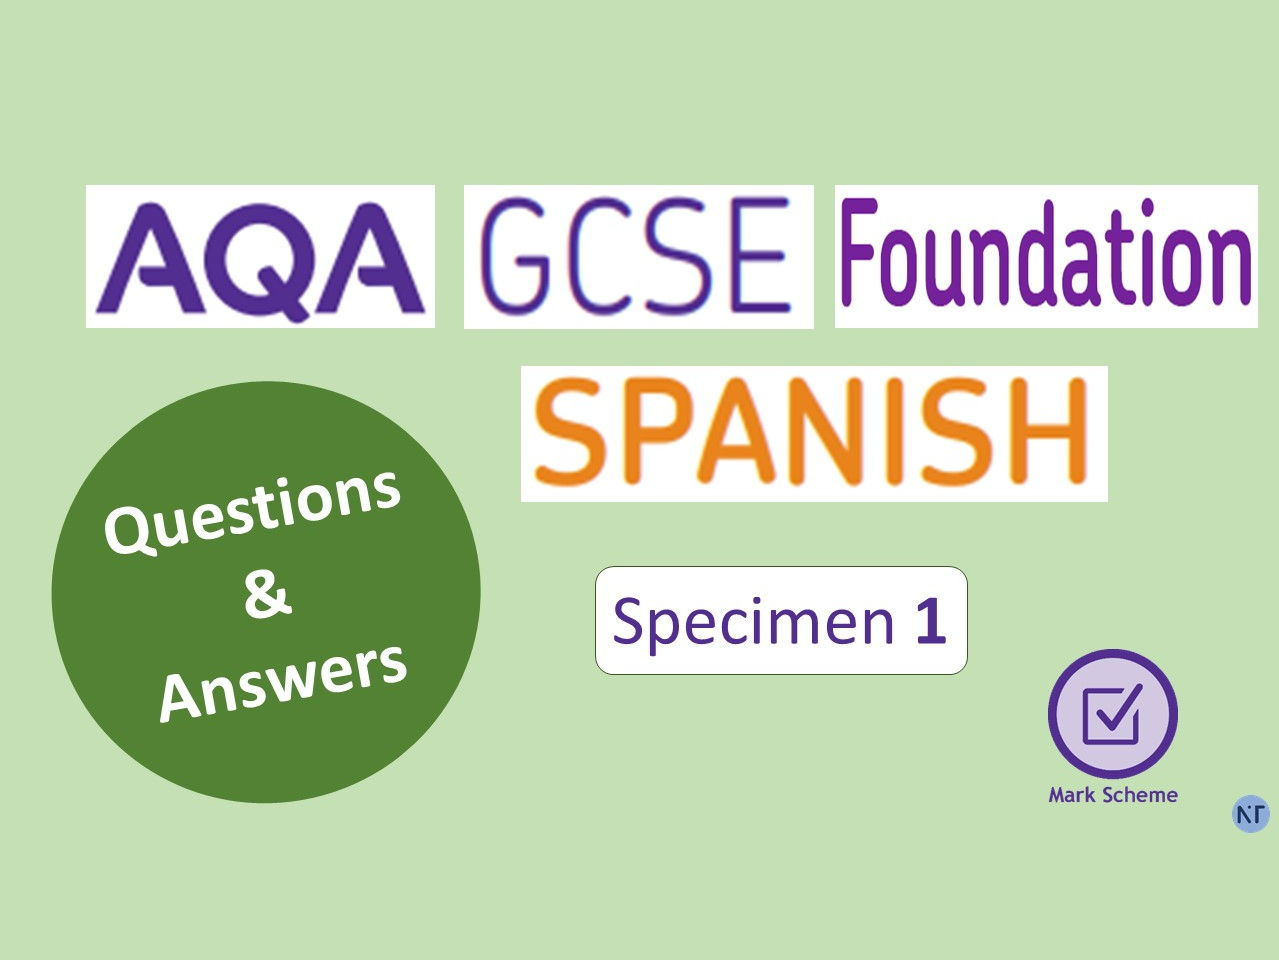 GCSE Foundation Specimen 1: Papers 1,2,3